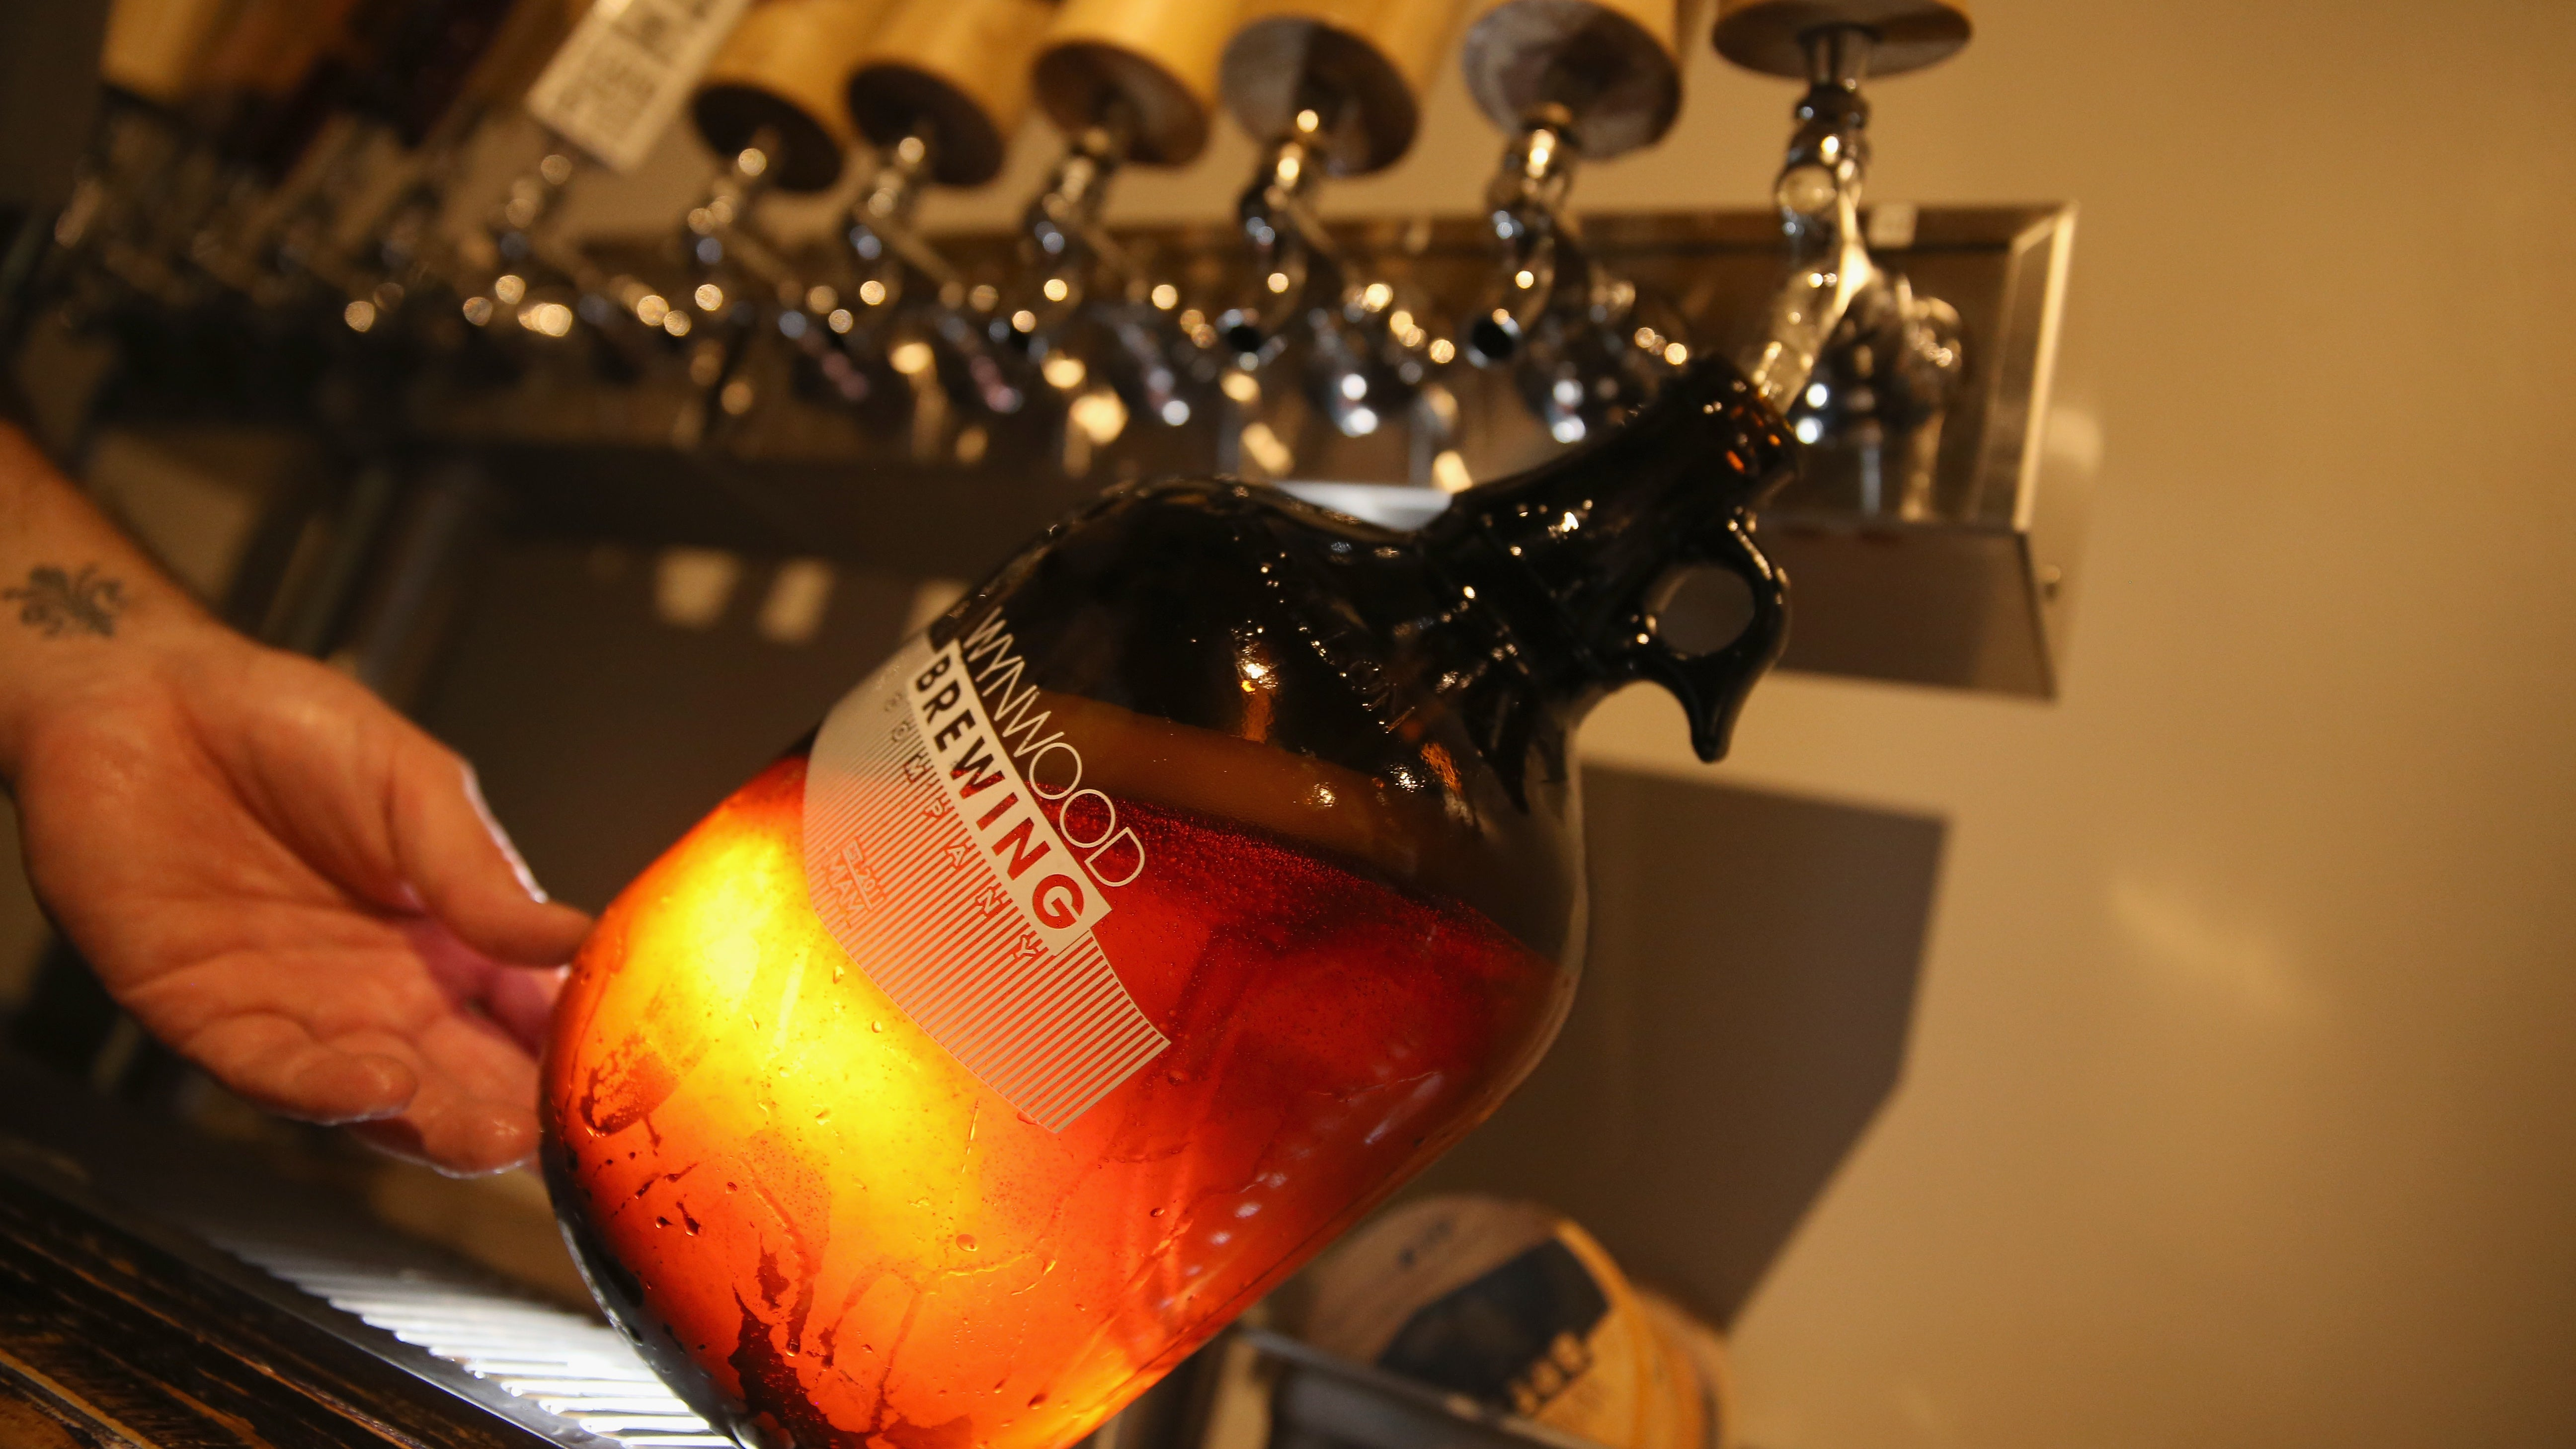 How To Clean A Beer Growler